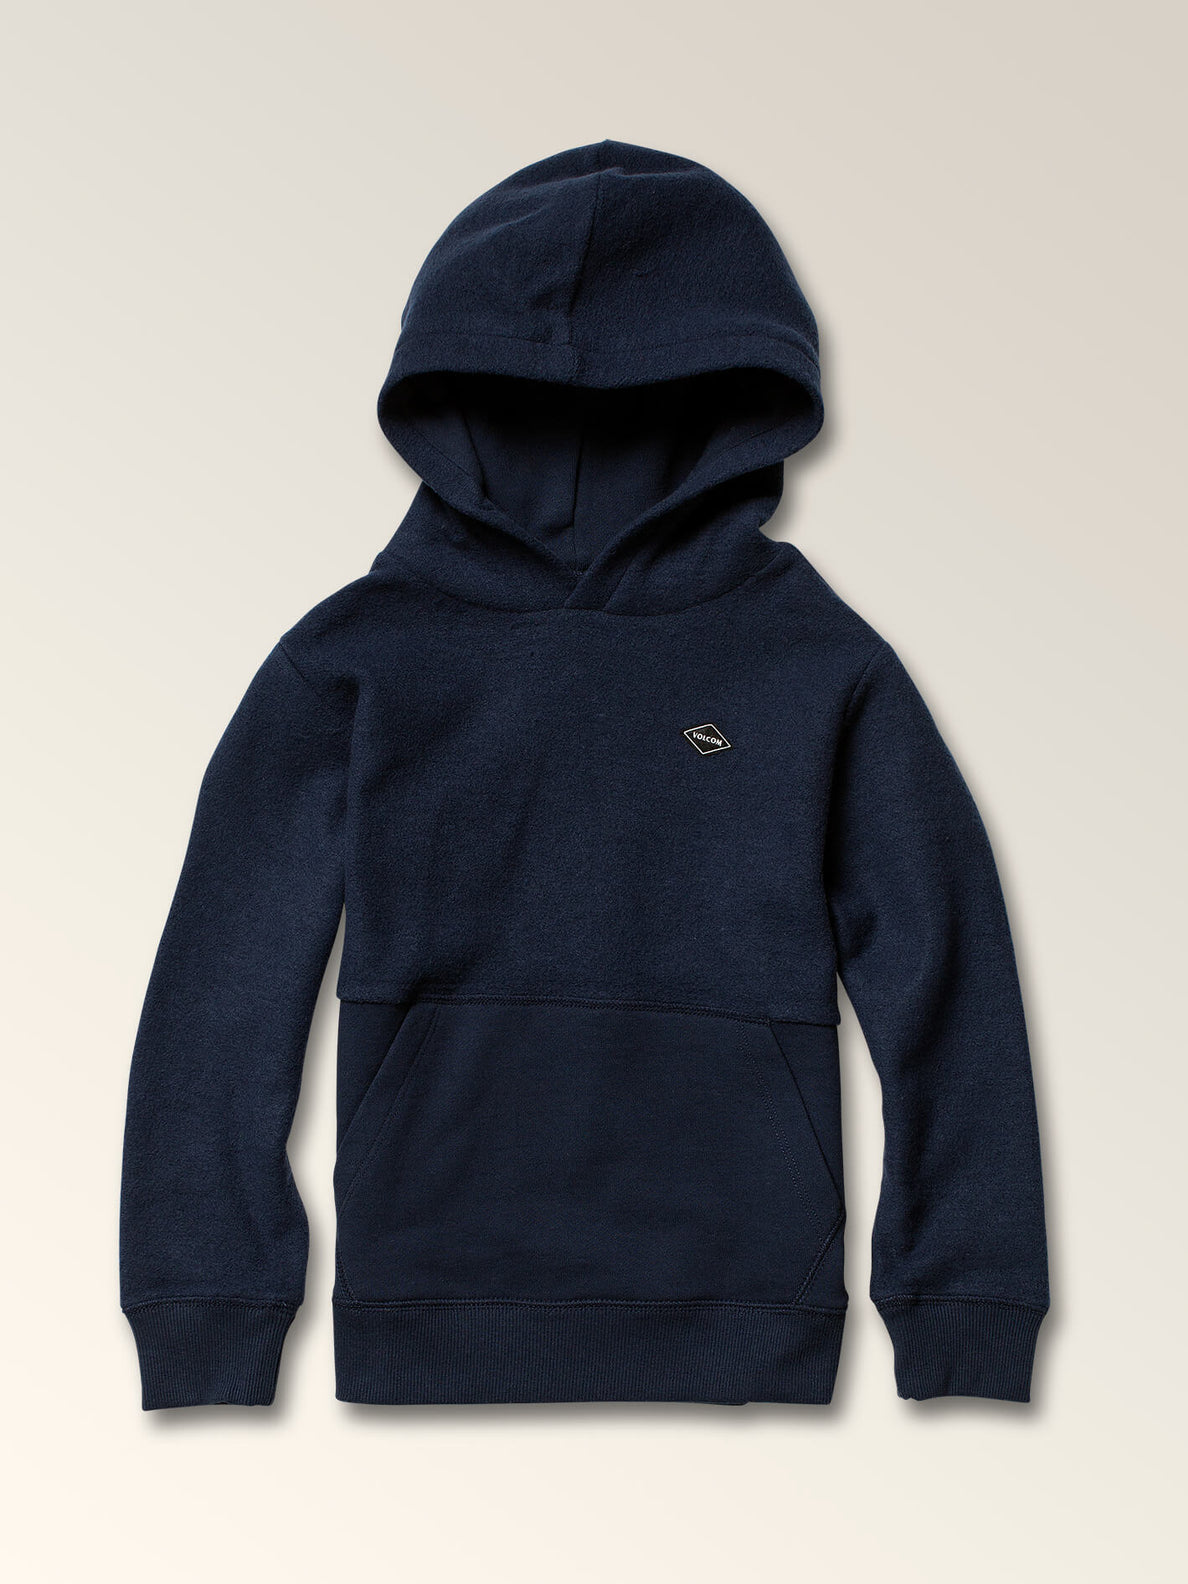 Little Boys Single Stone Sub Division Pullover Hoodie In Melindigo, Front View